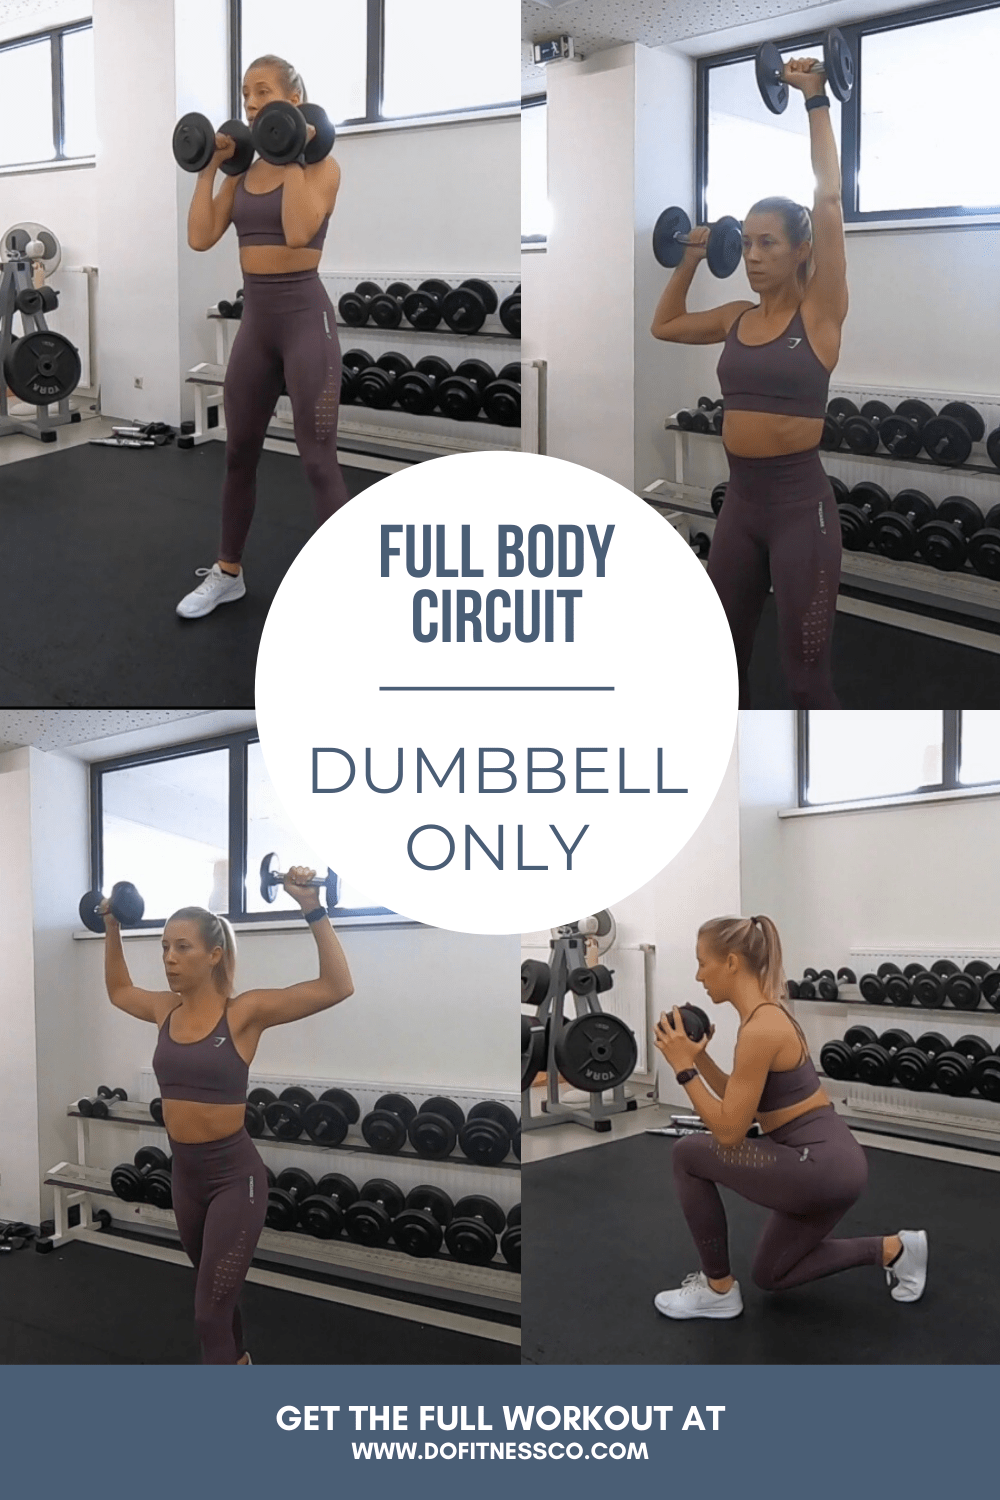 Full Body Circuit, Dumbbell Only Banner Image